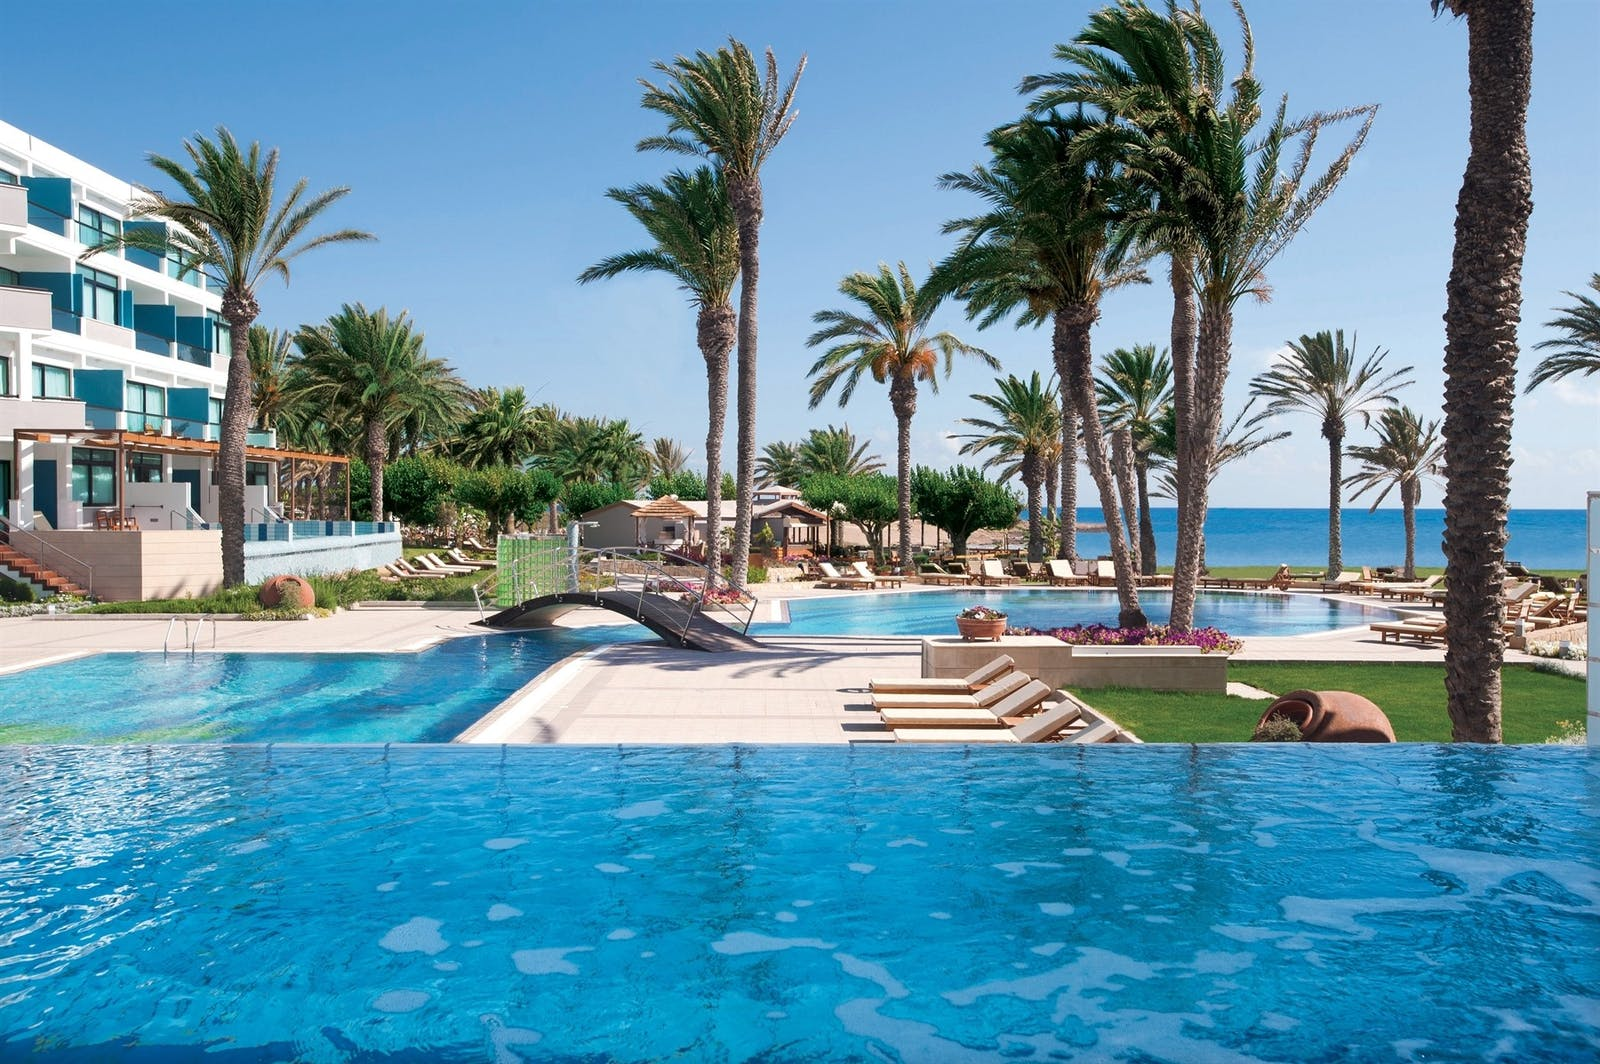 Swimming pool area at Constantinou Bros Asimina Suites Hotel, Almyra, Cyprus